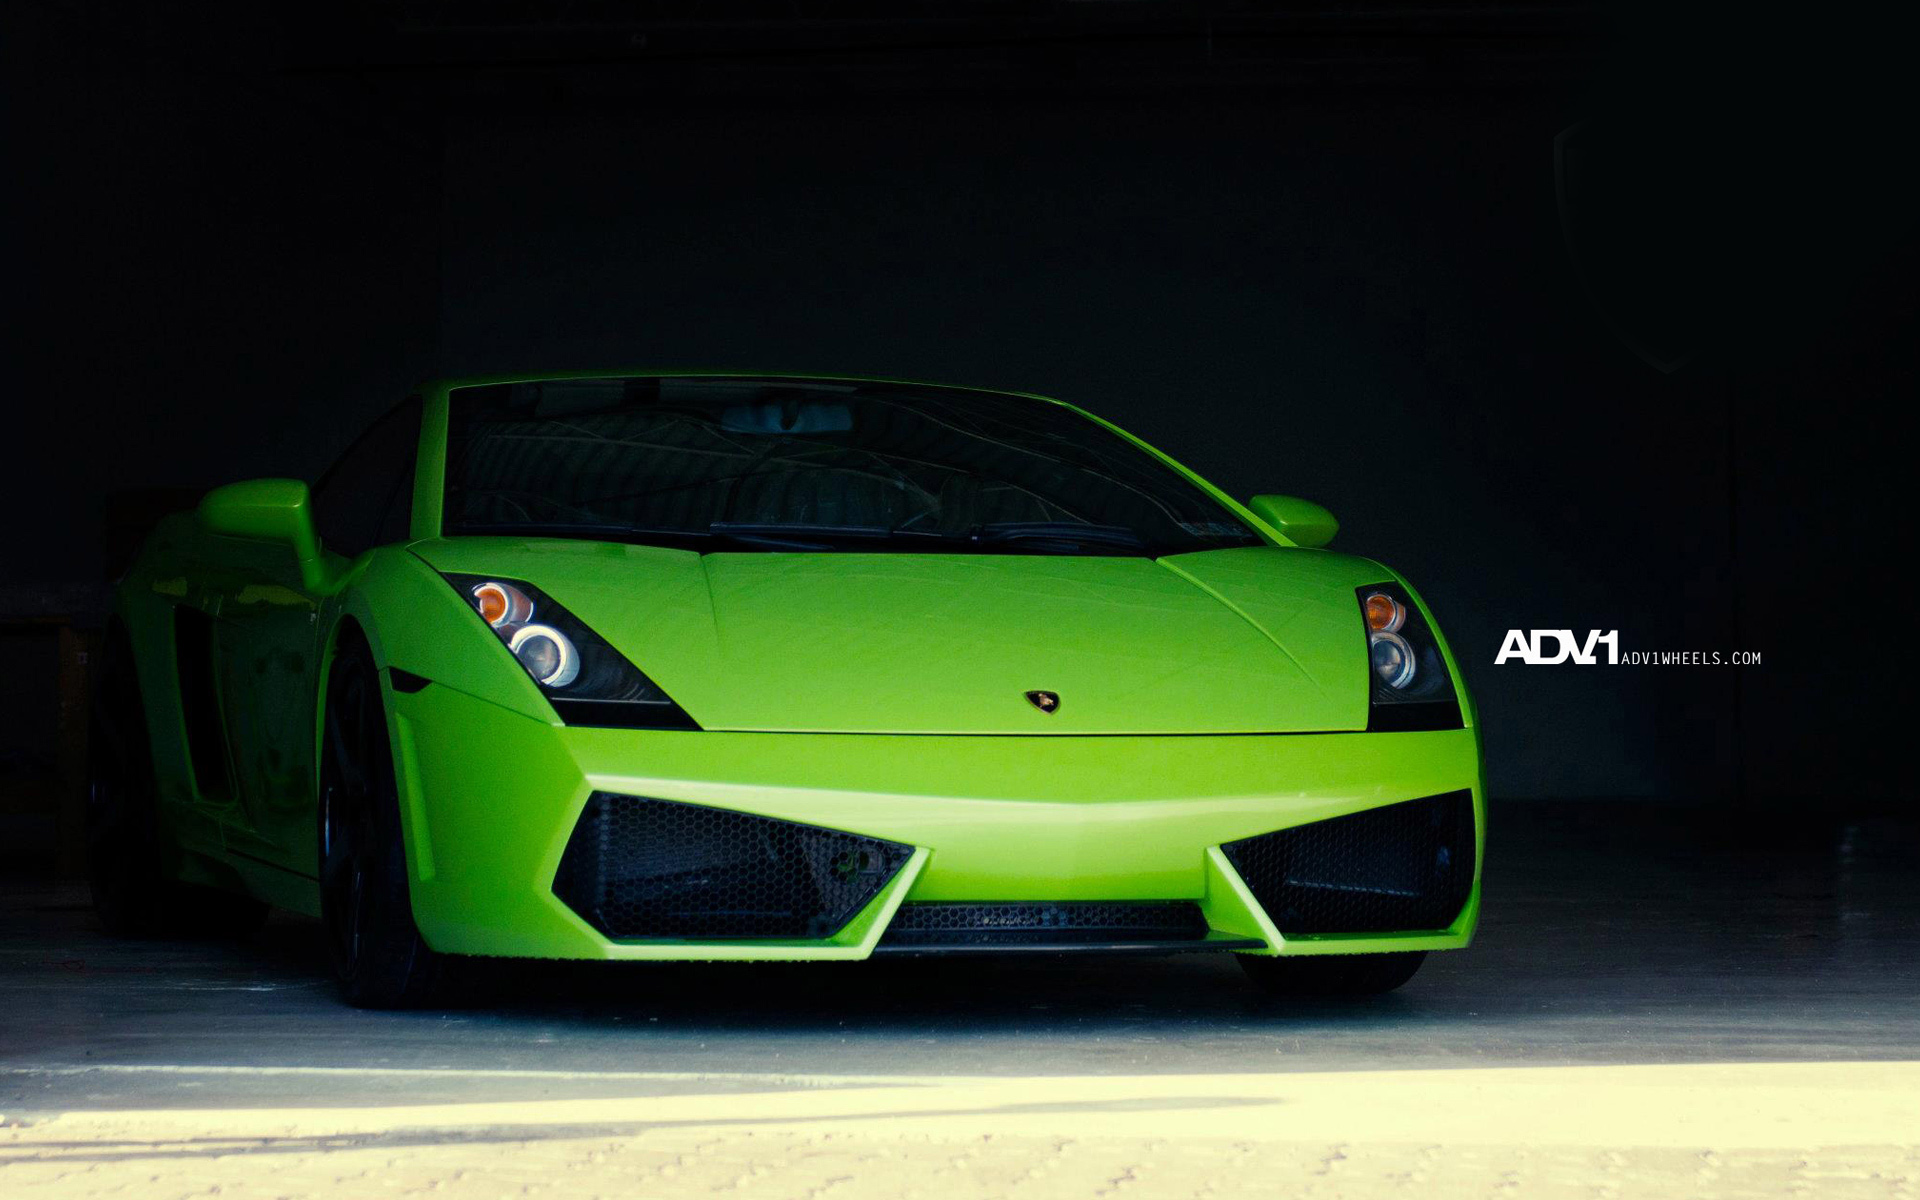 Lamborghini Gallardo Adv5 Track Spec Wallpaper Hd Car Wallpapers Id 2645